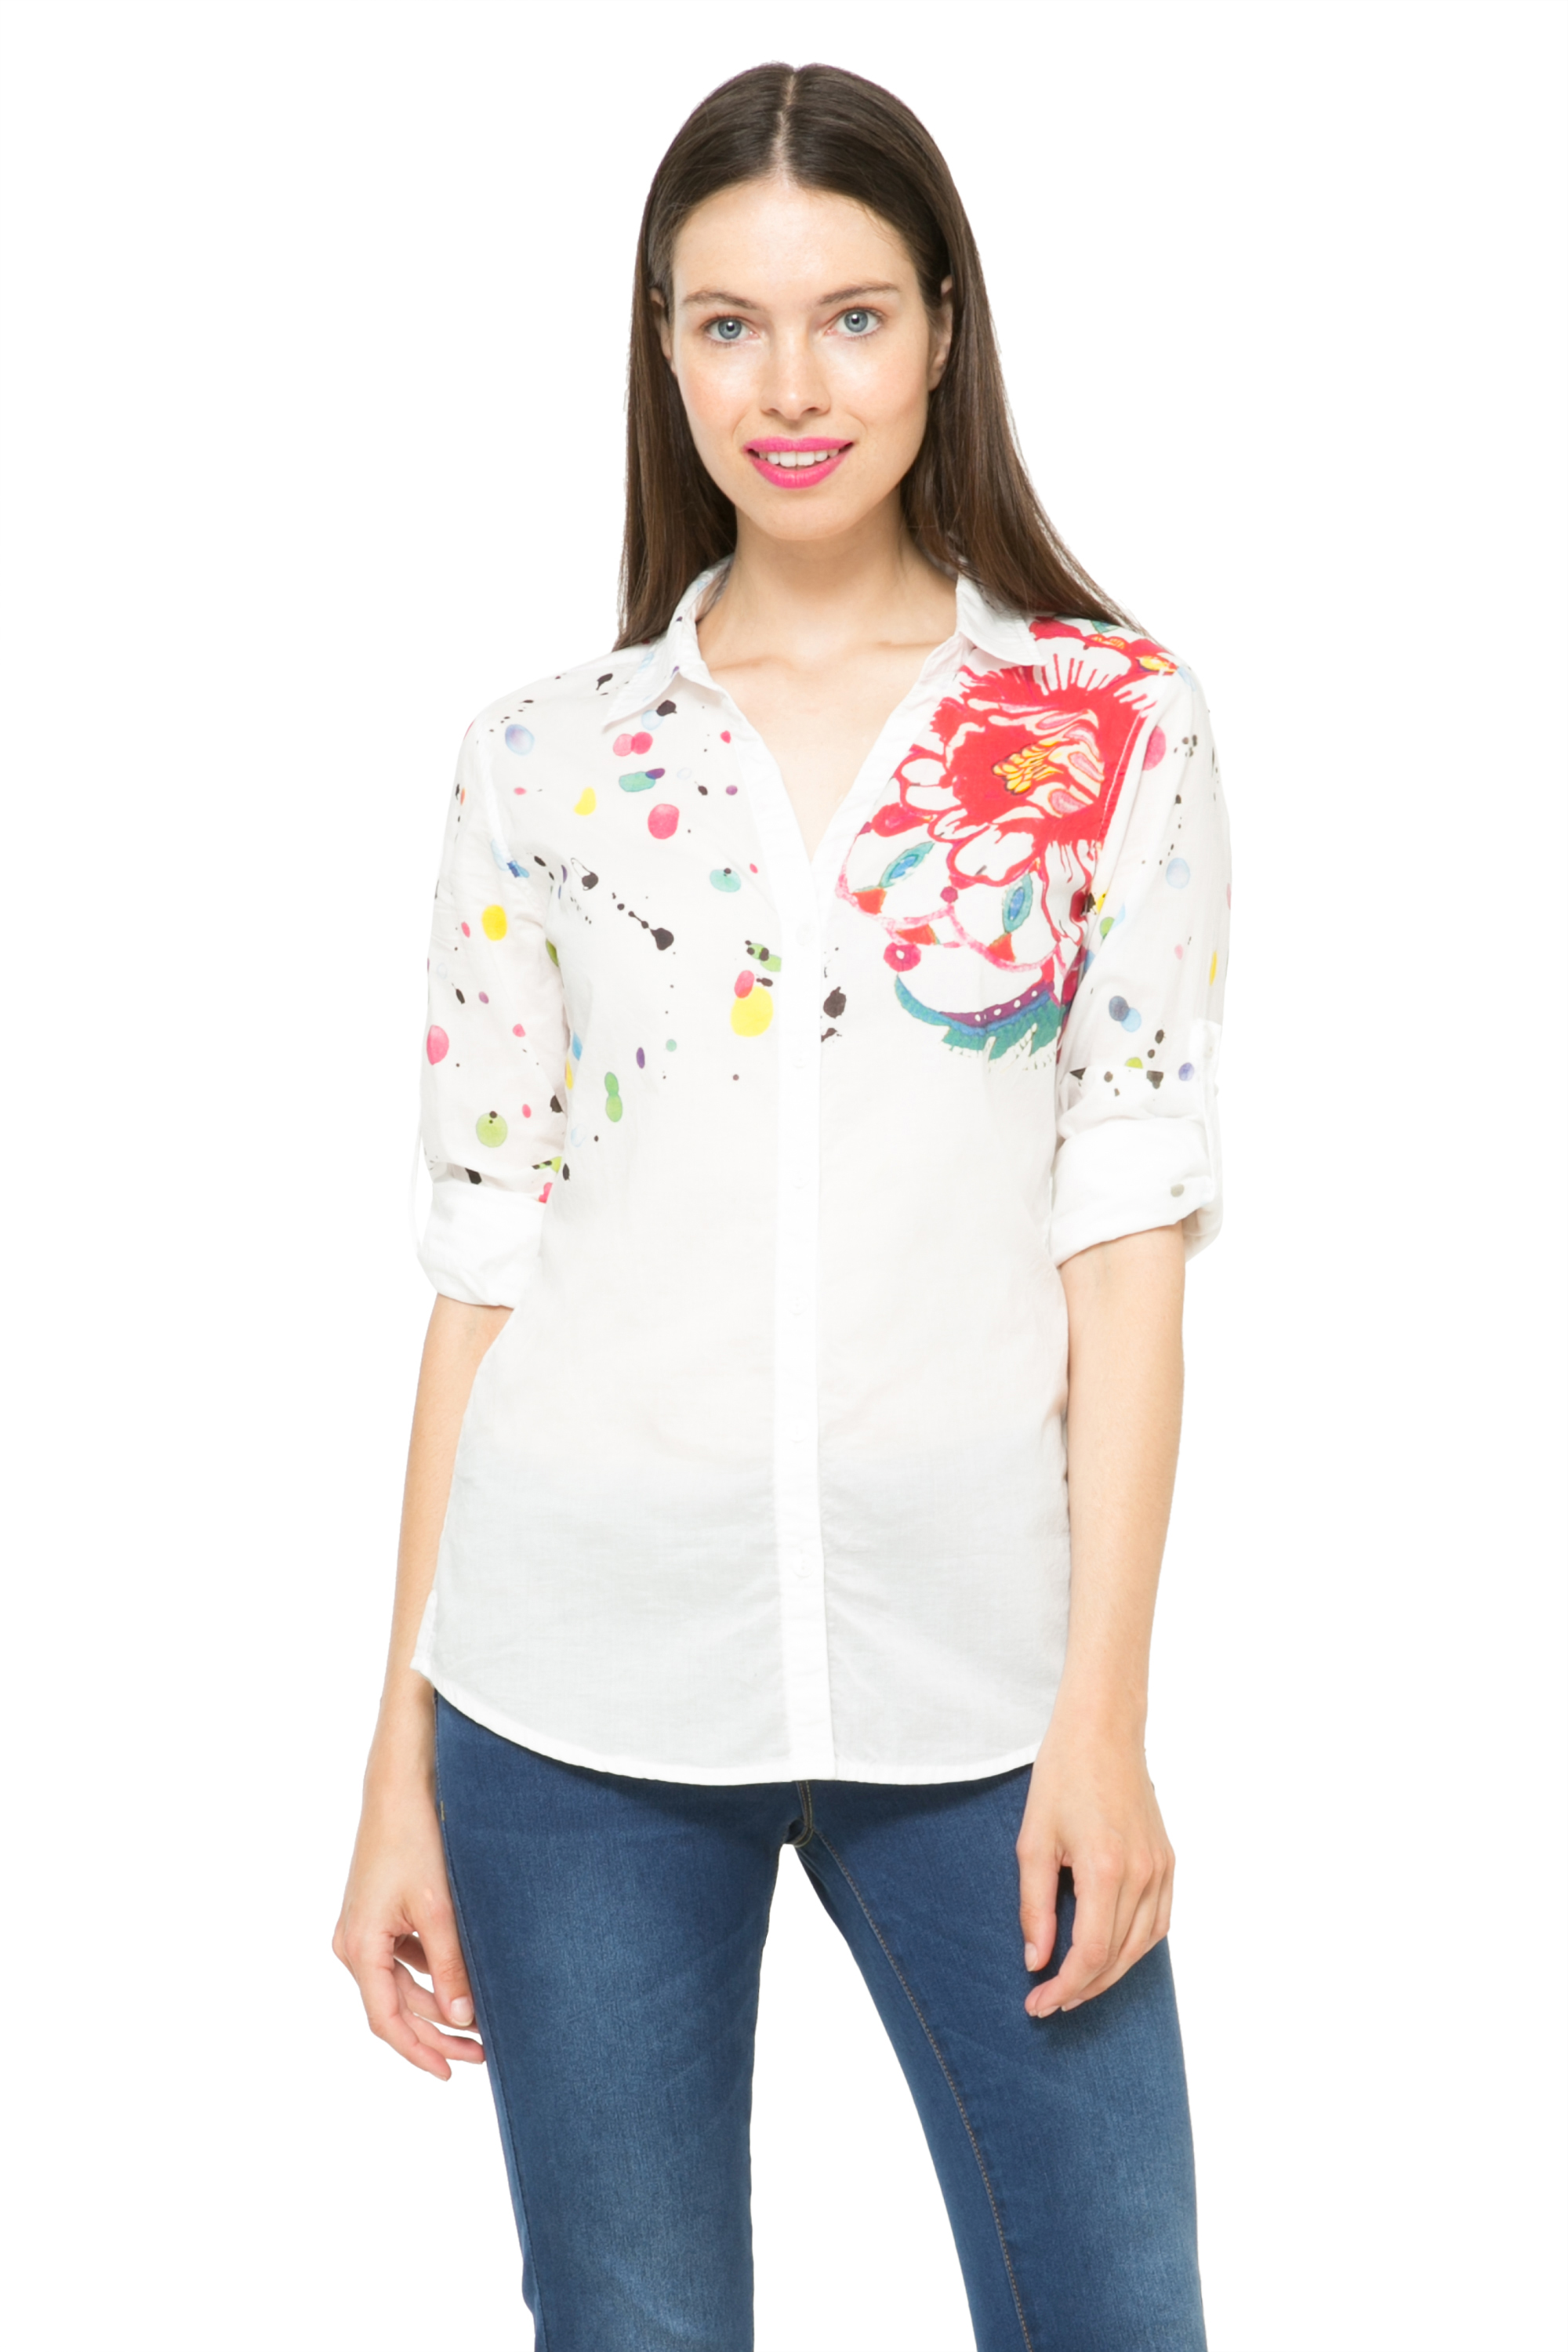 Desigual White Colorme Writing Embroidery Shirt XS-XXL UK 8-18 RRP£64